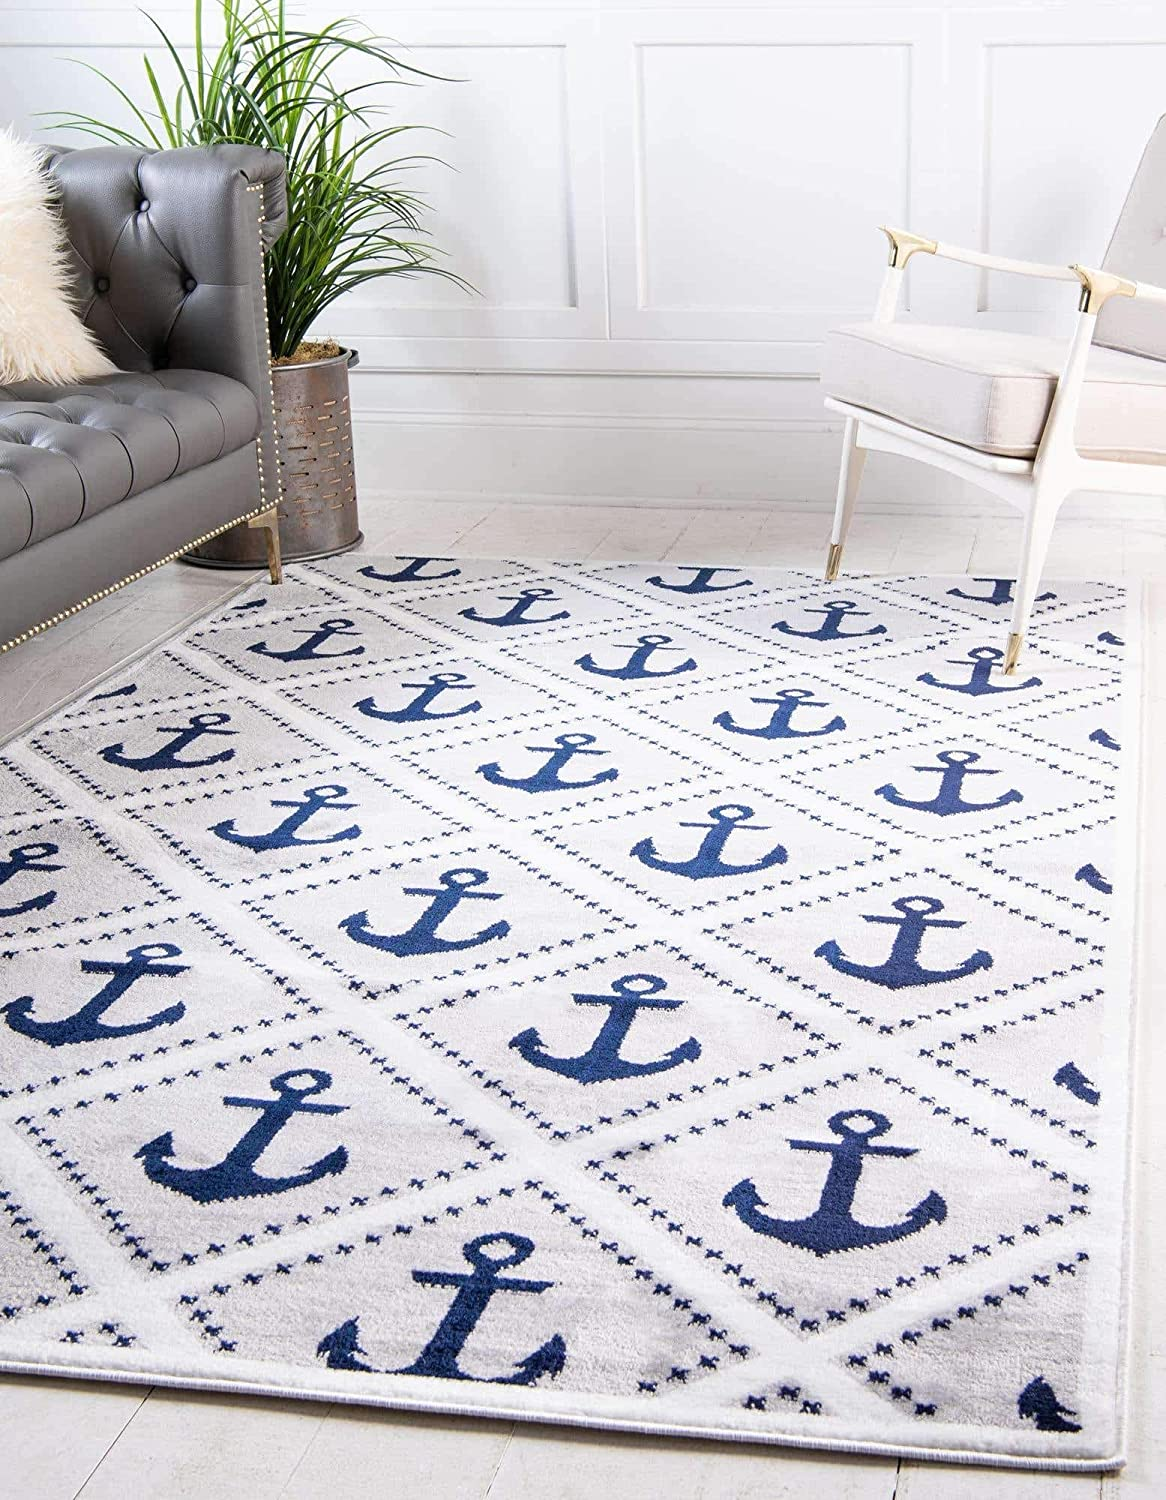 Amazon Com Unique Loom Metro Collection Modern Nautical Geometric Anchor Gray Area Rug 8 0 X 10 0 Furniture Decor